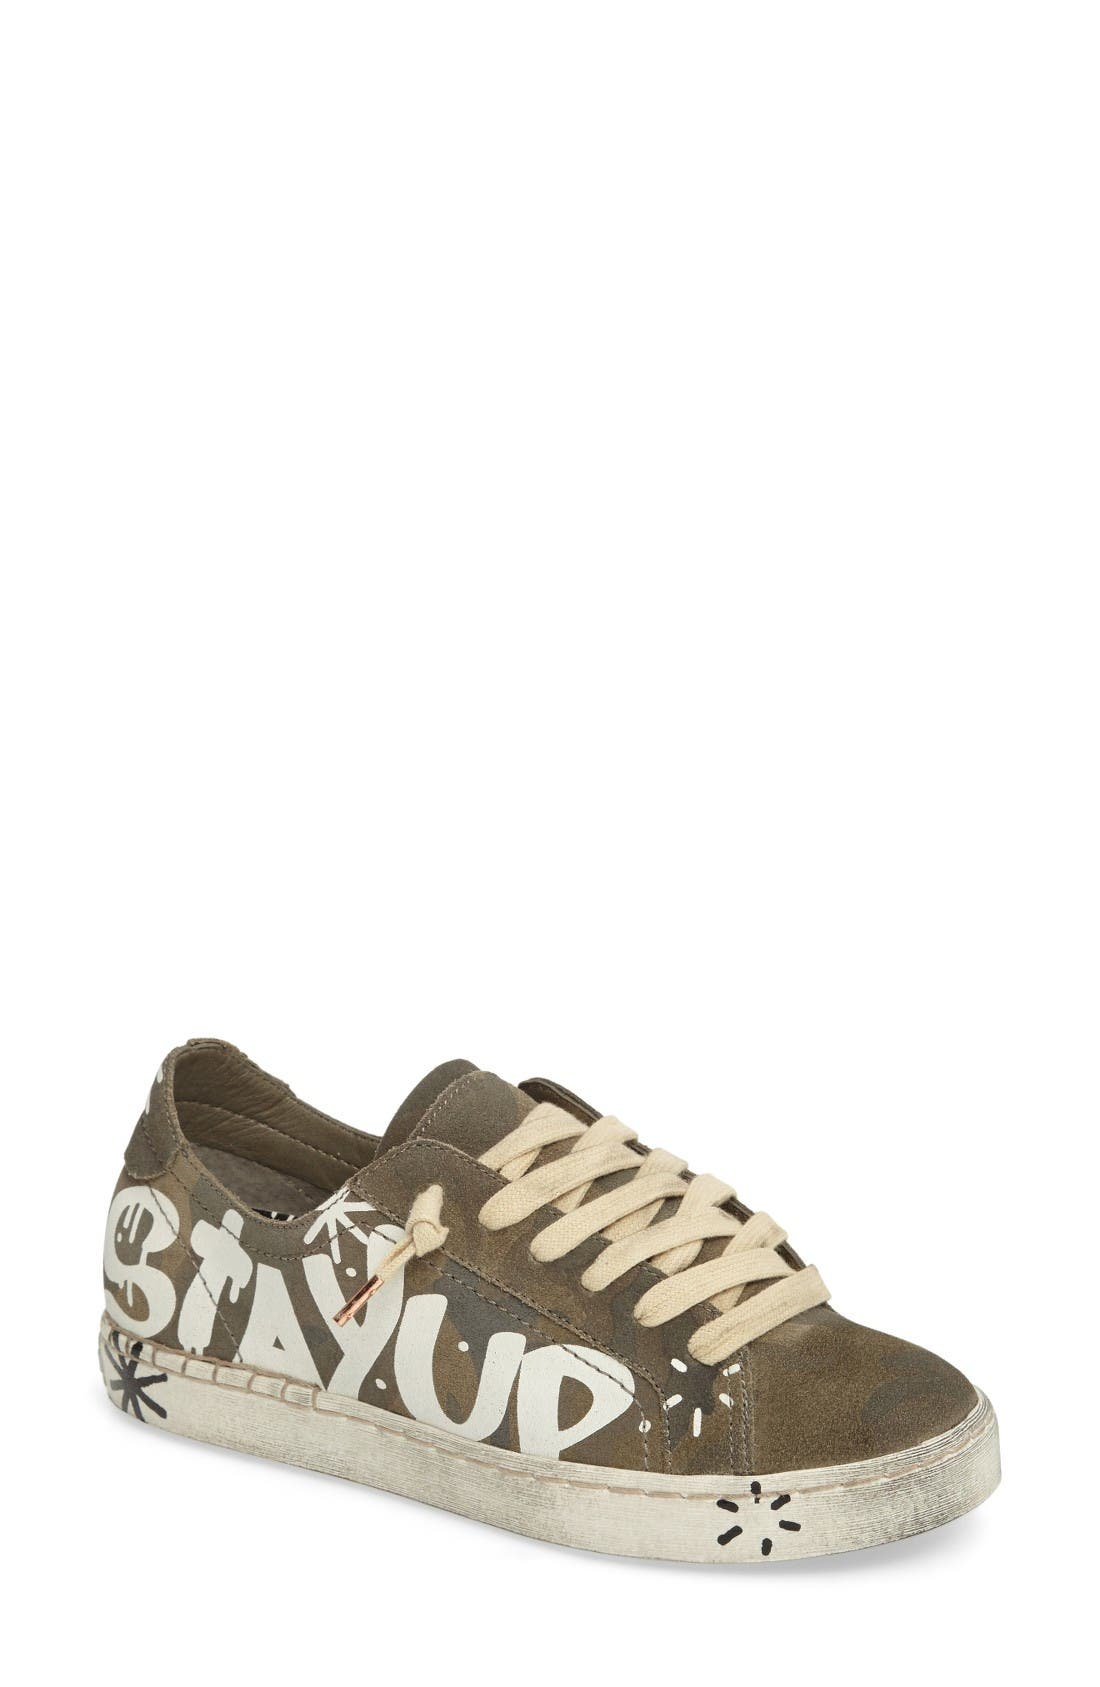 DOLCE VITA Z-Stay Up Platform Sneaker